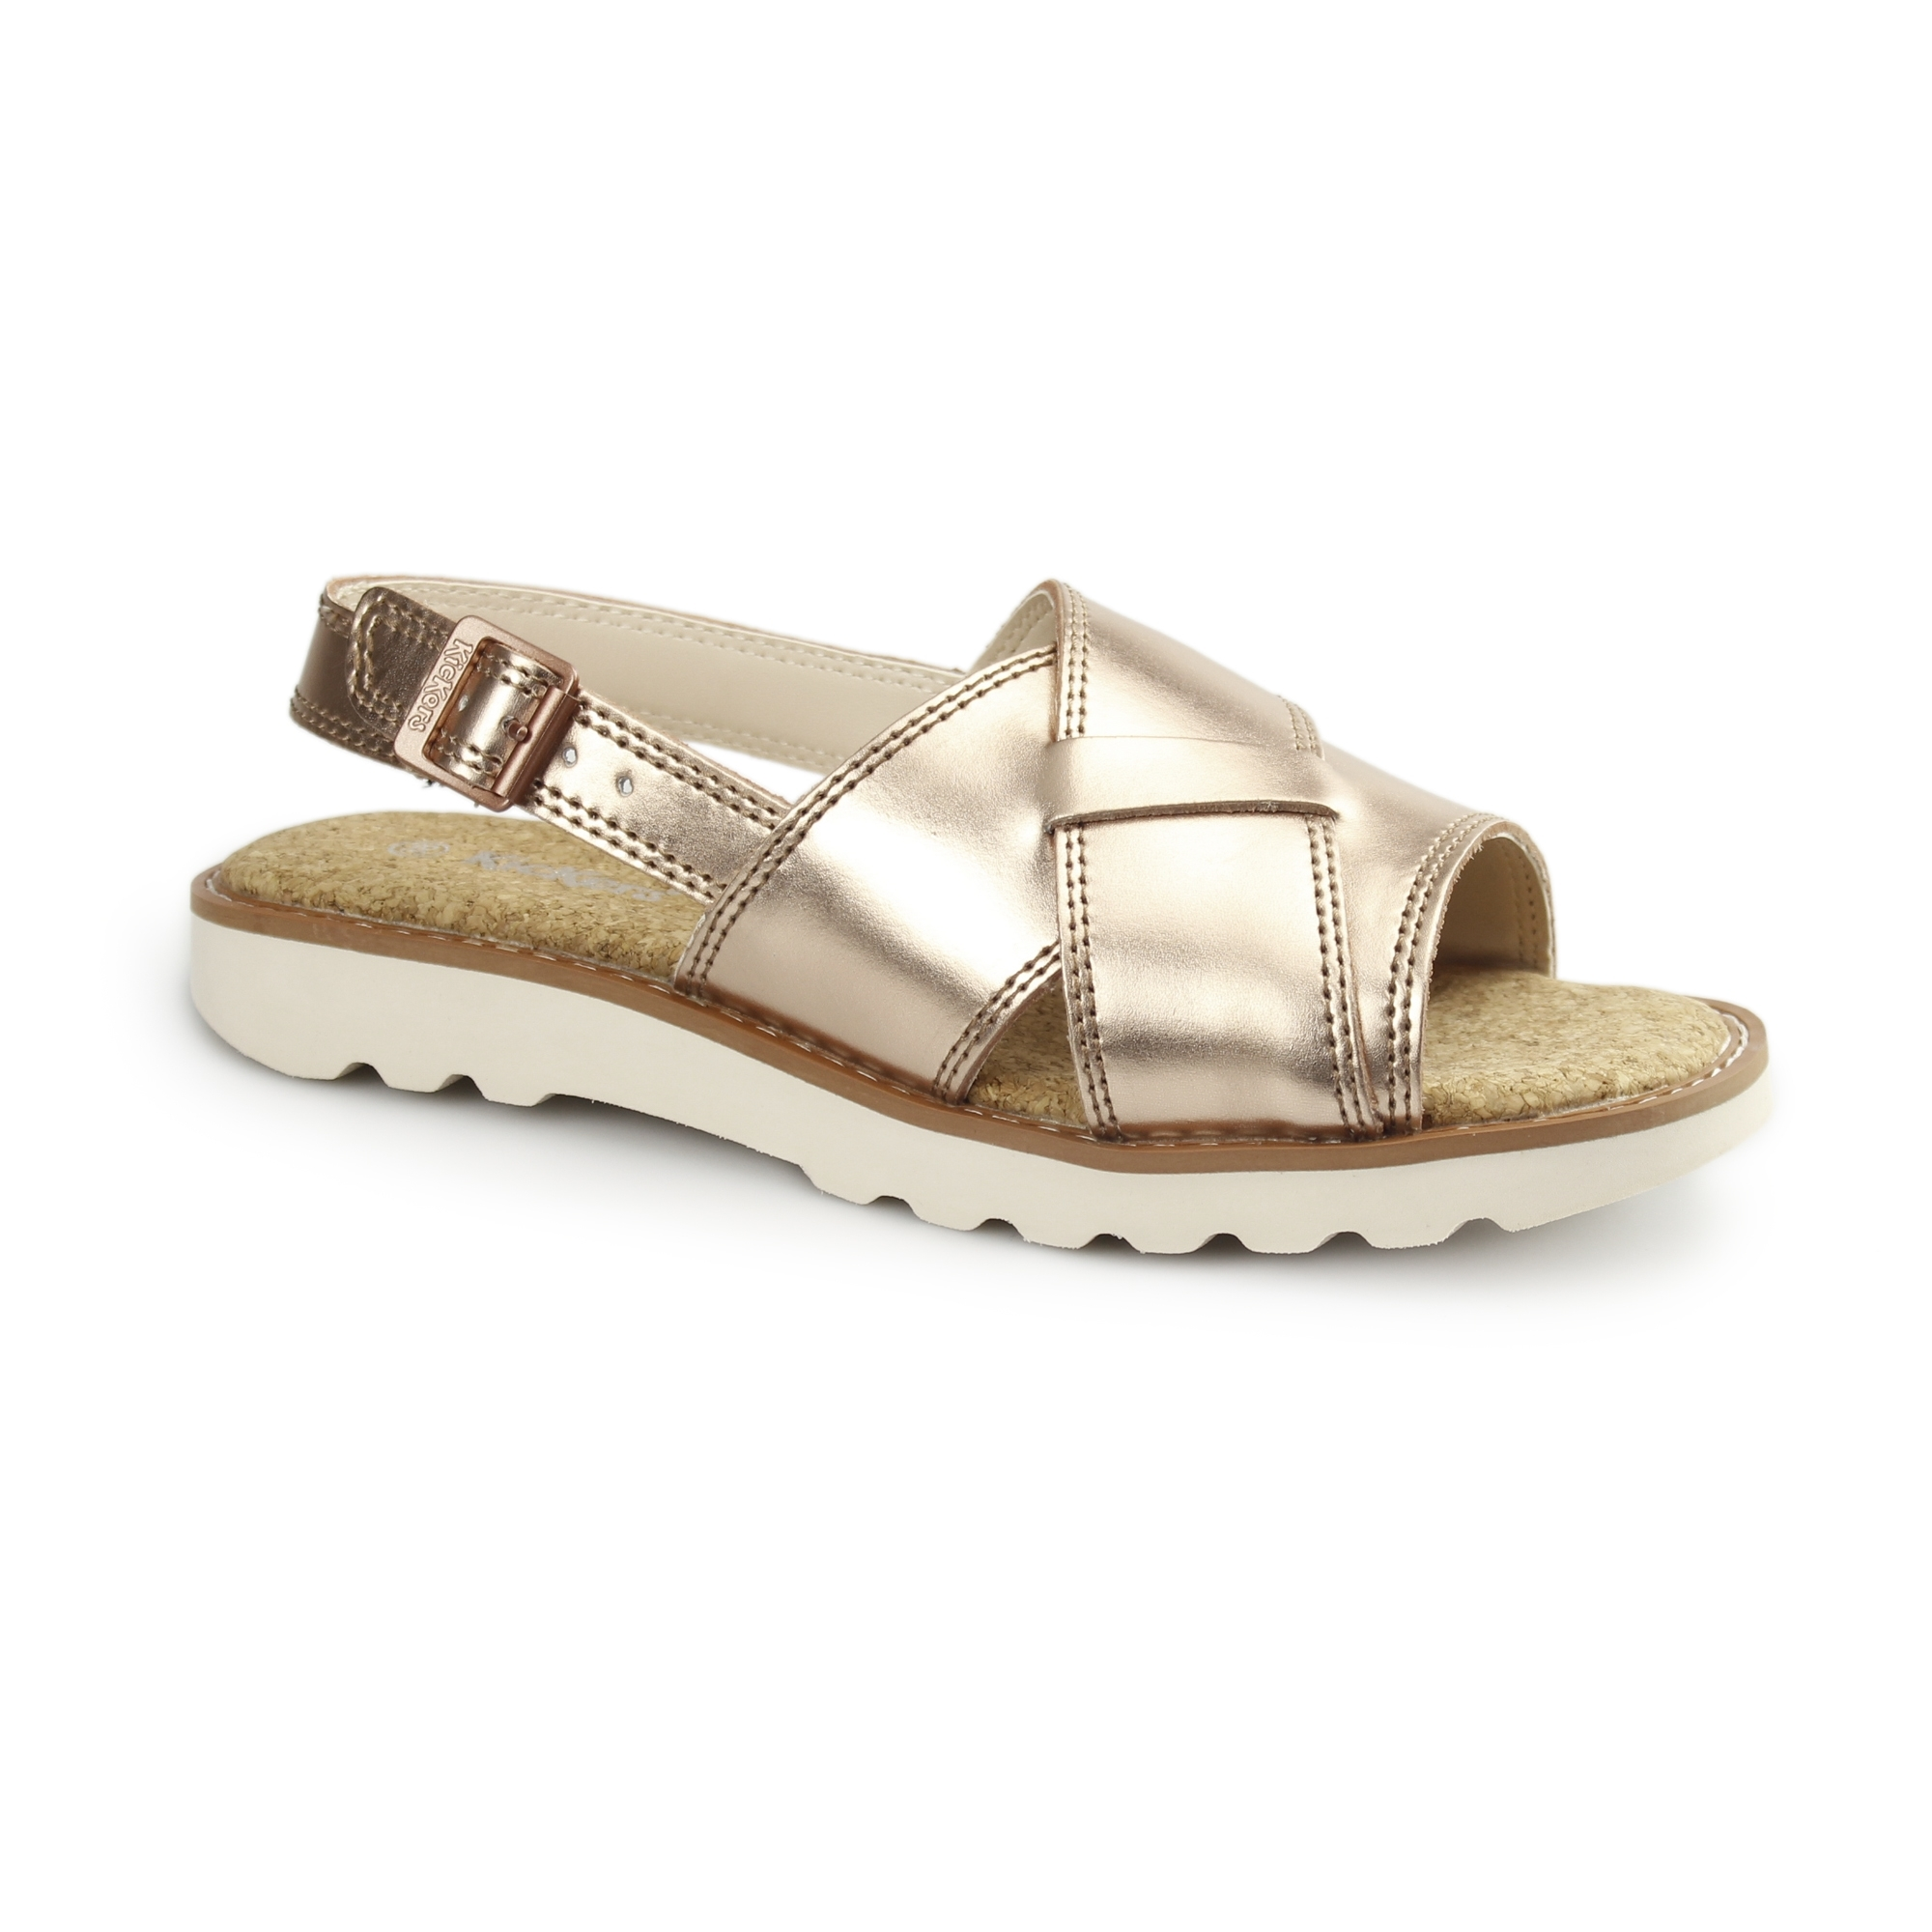 Sandals Kick Lite Kickers Weave Metallicgold Ladies kXZuiP